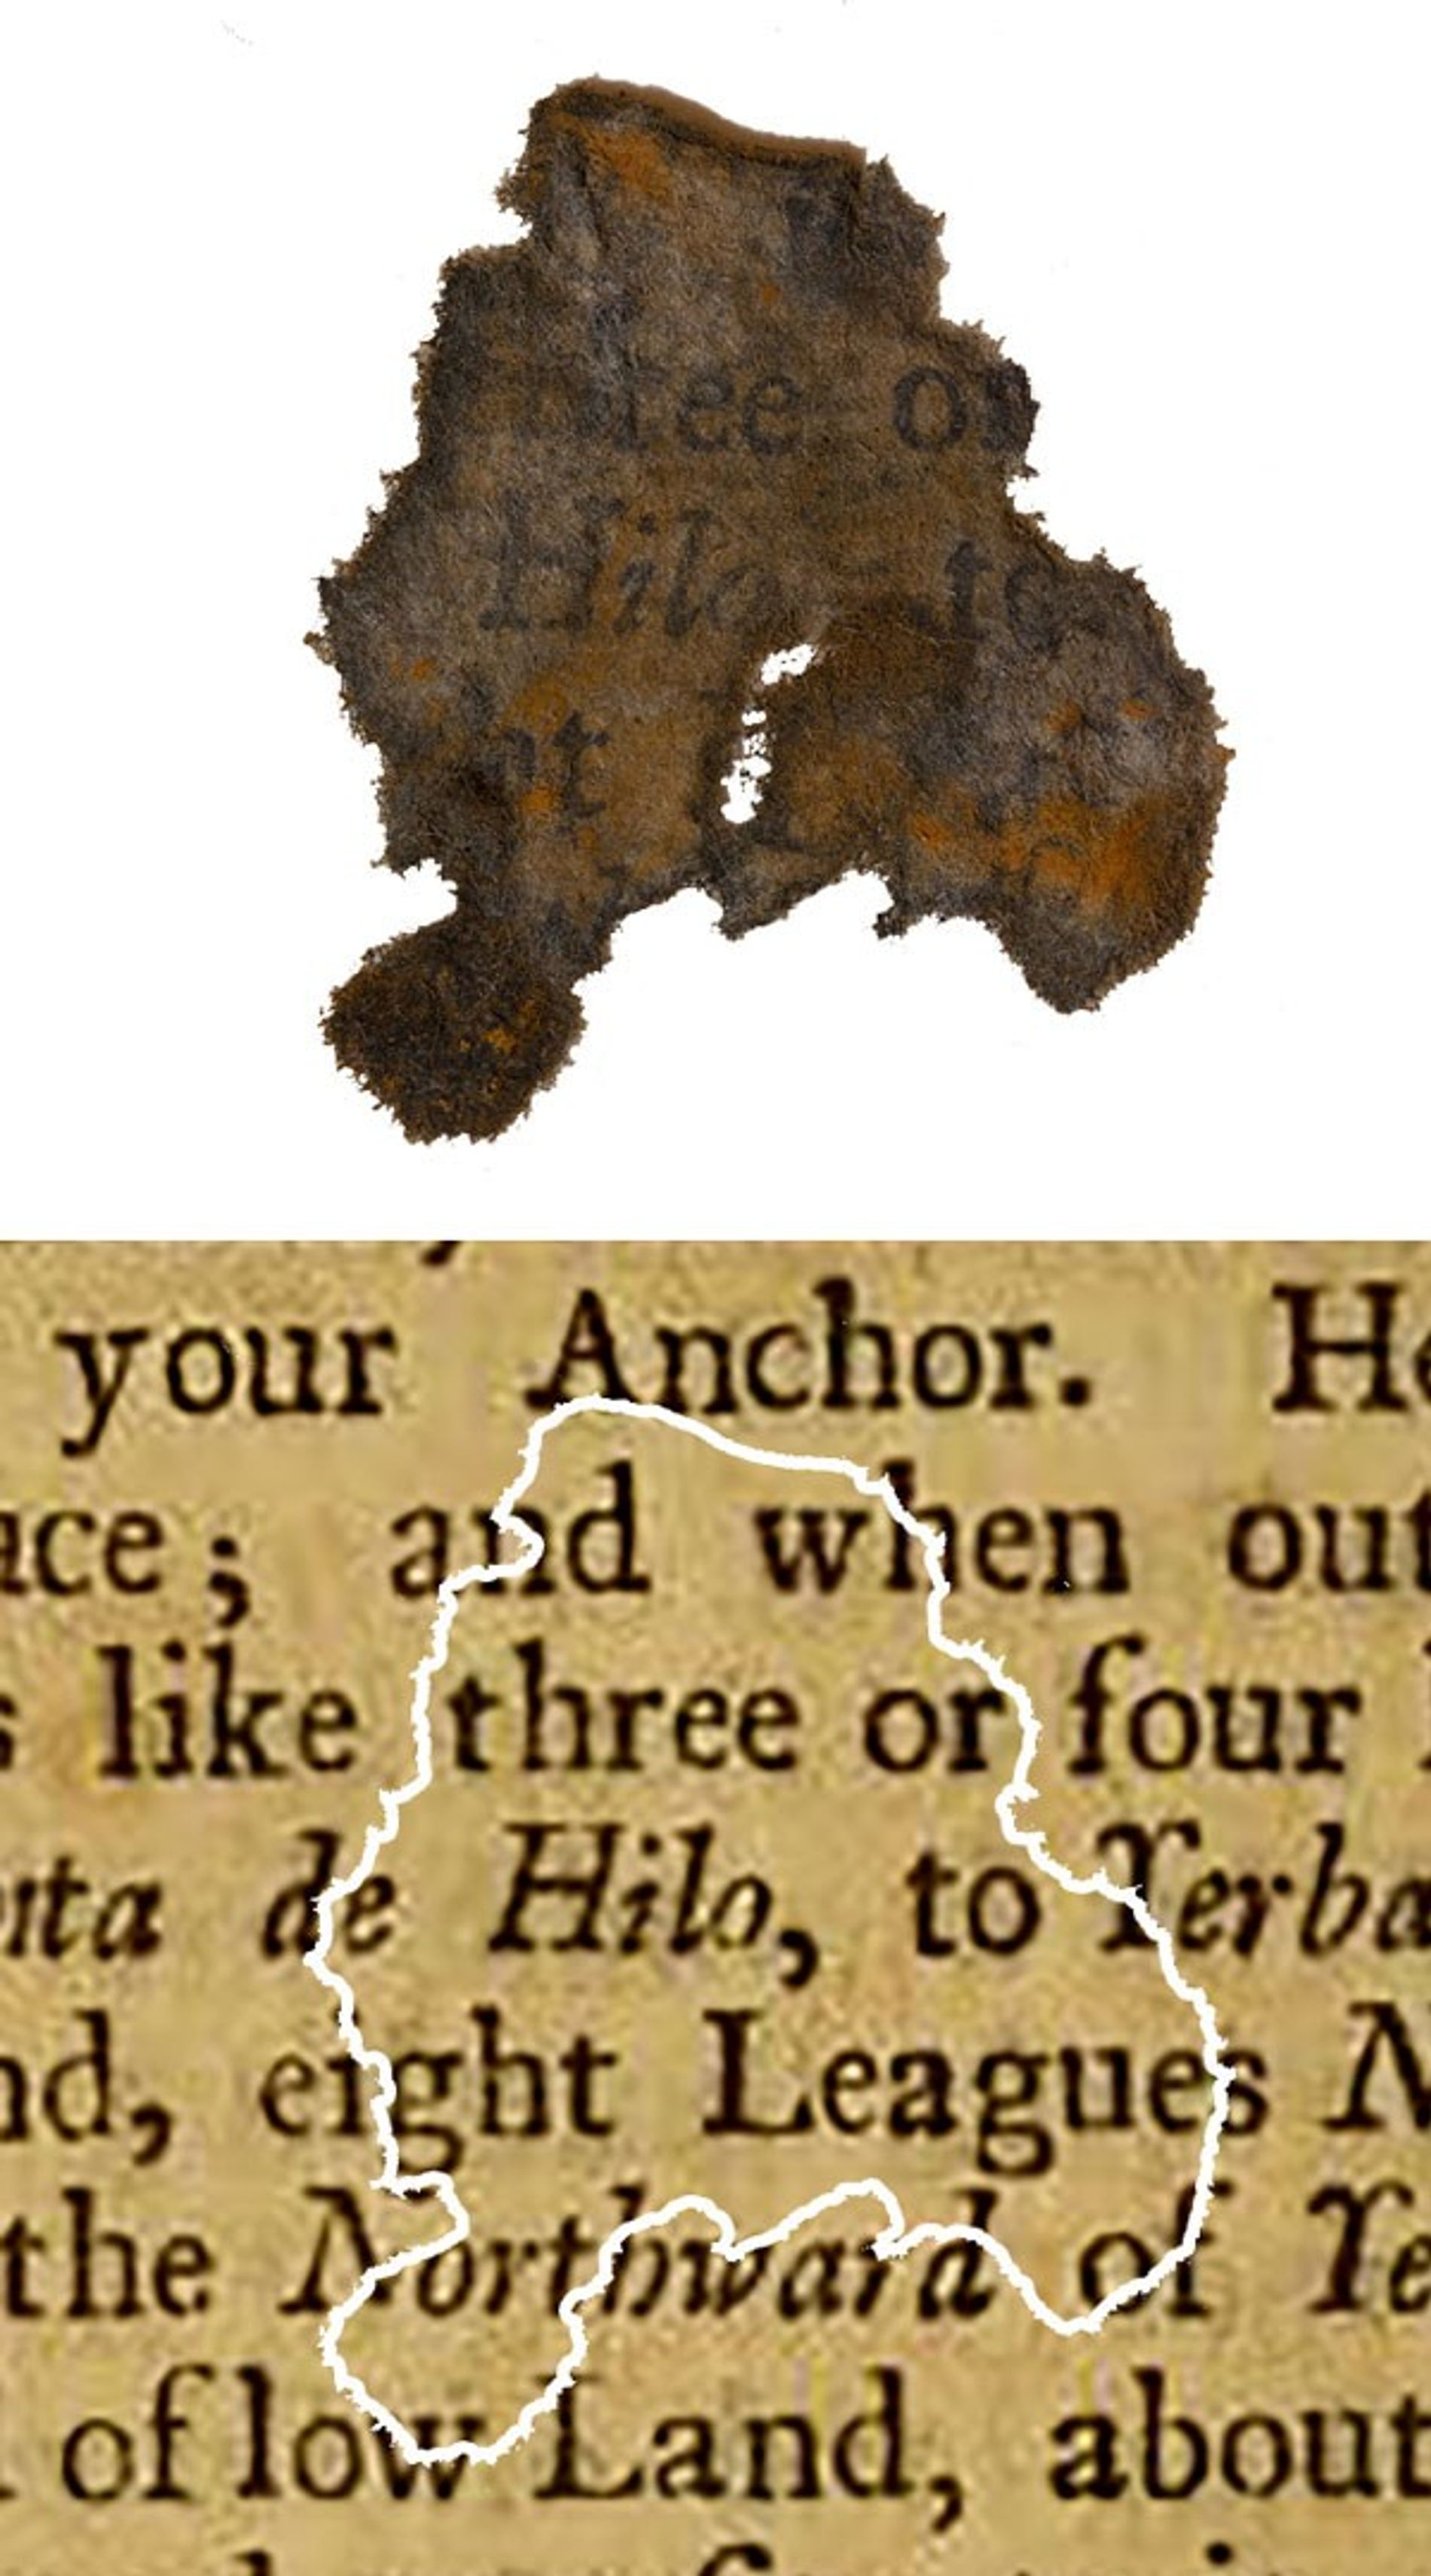 <p>A fragment of paper discovered on Blackbeard's flagship <i>Queen Anne's Revenge</i>, compared with the book it was determined to be from.</p>